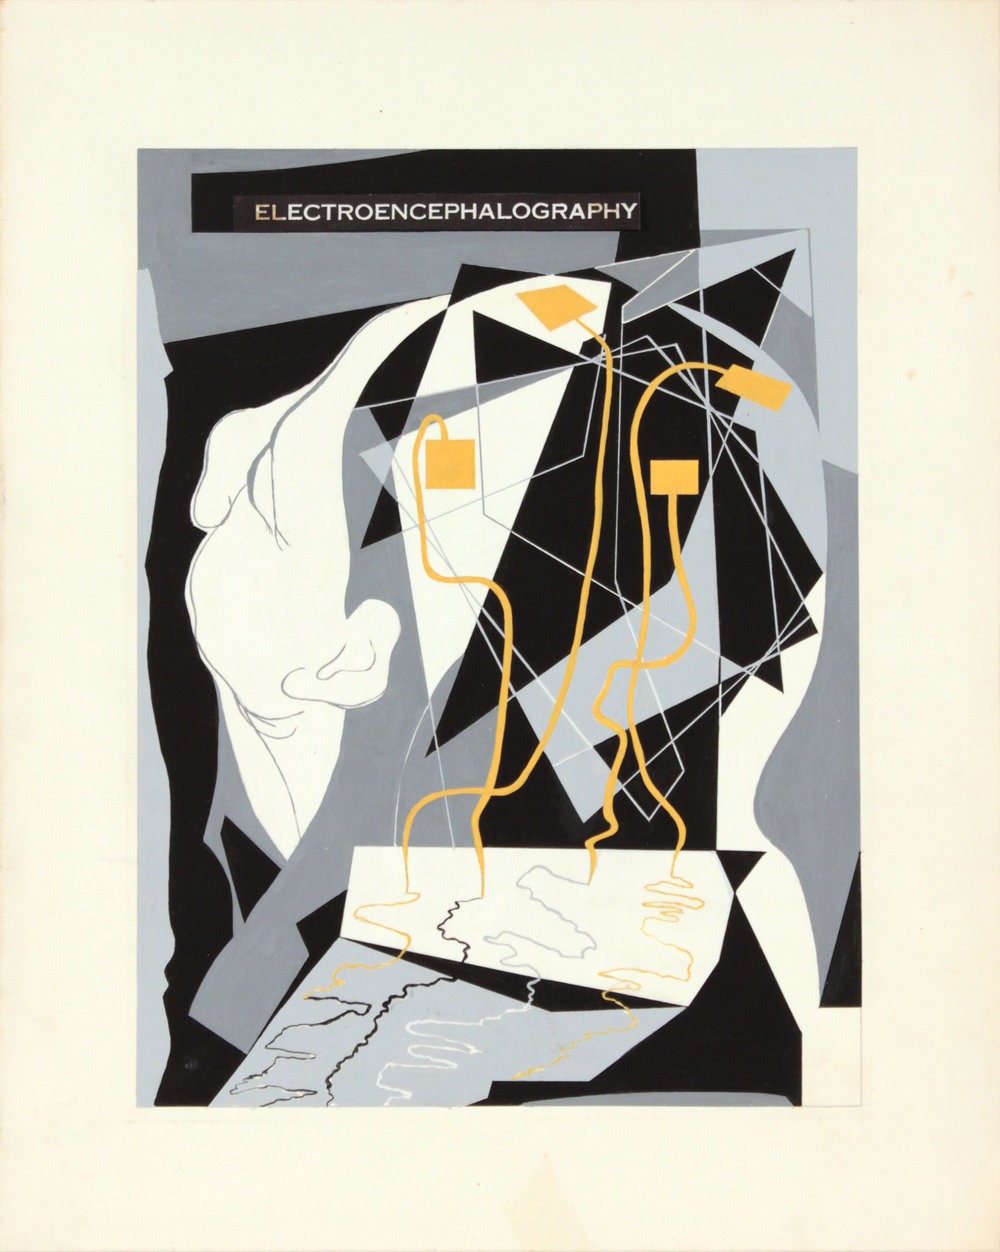 15. 1948-49 c, Image 44_Electroencephalography, Poster Paint on Paper, 15x12, PPS 1422.JPG